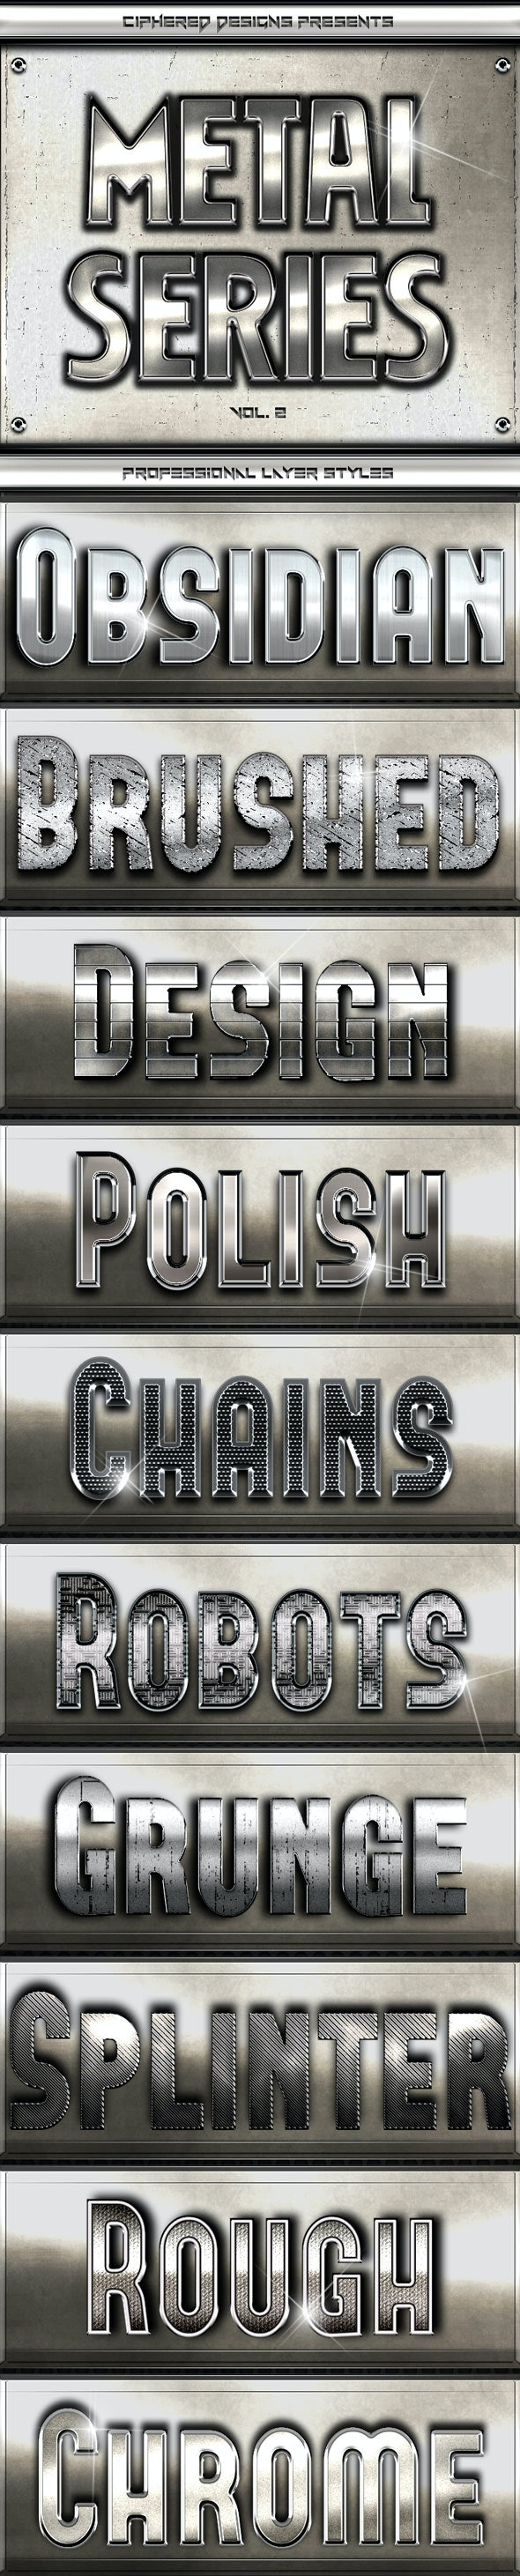 Metal Series II - Professional Layer Styles - Text Effects Styles